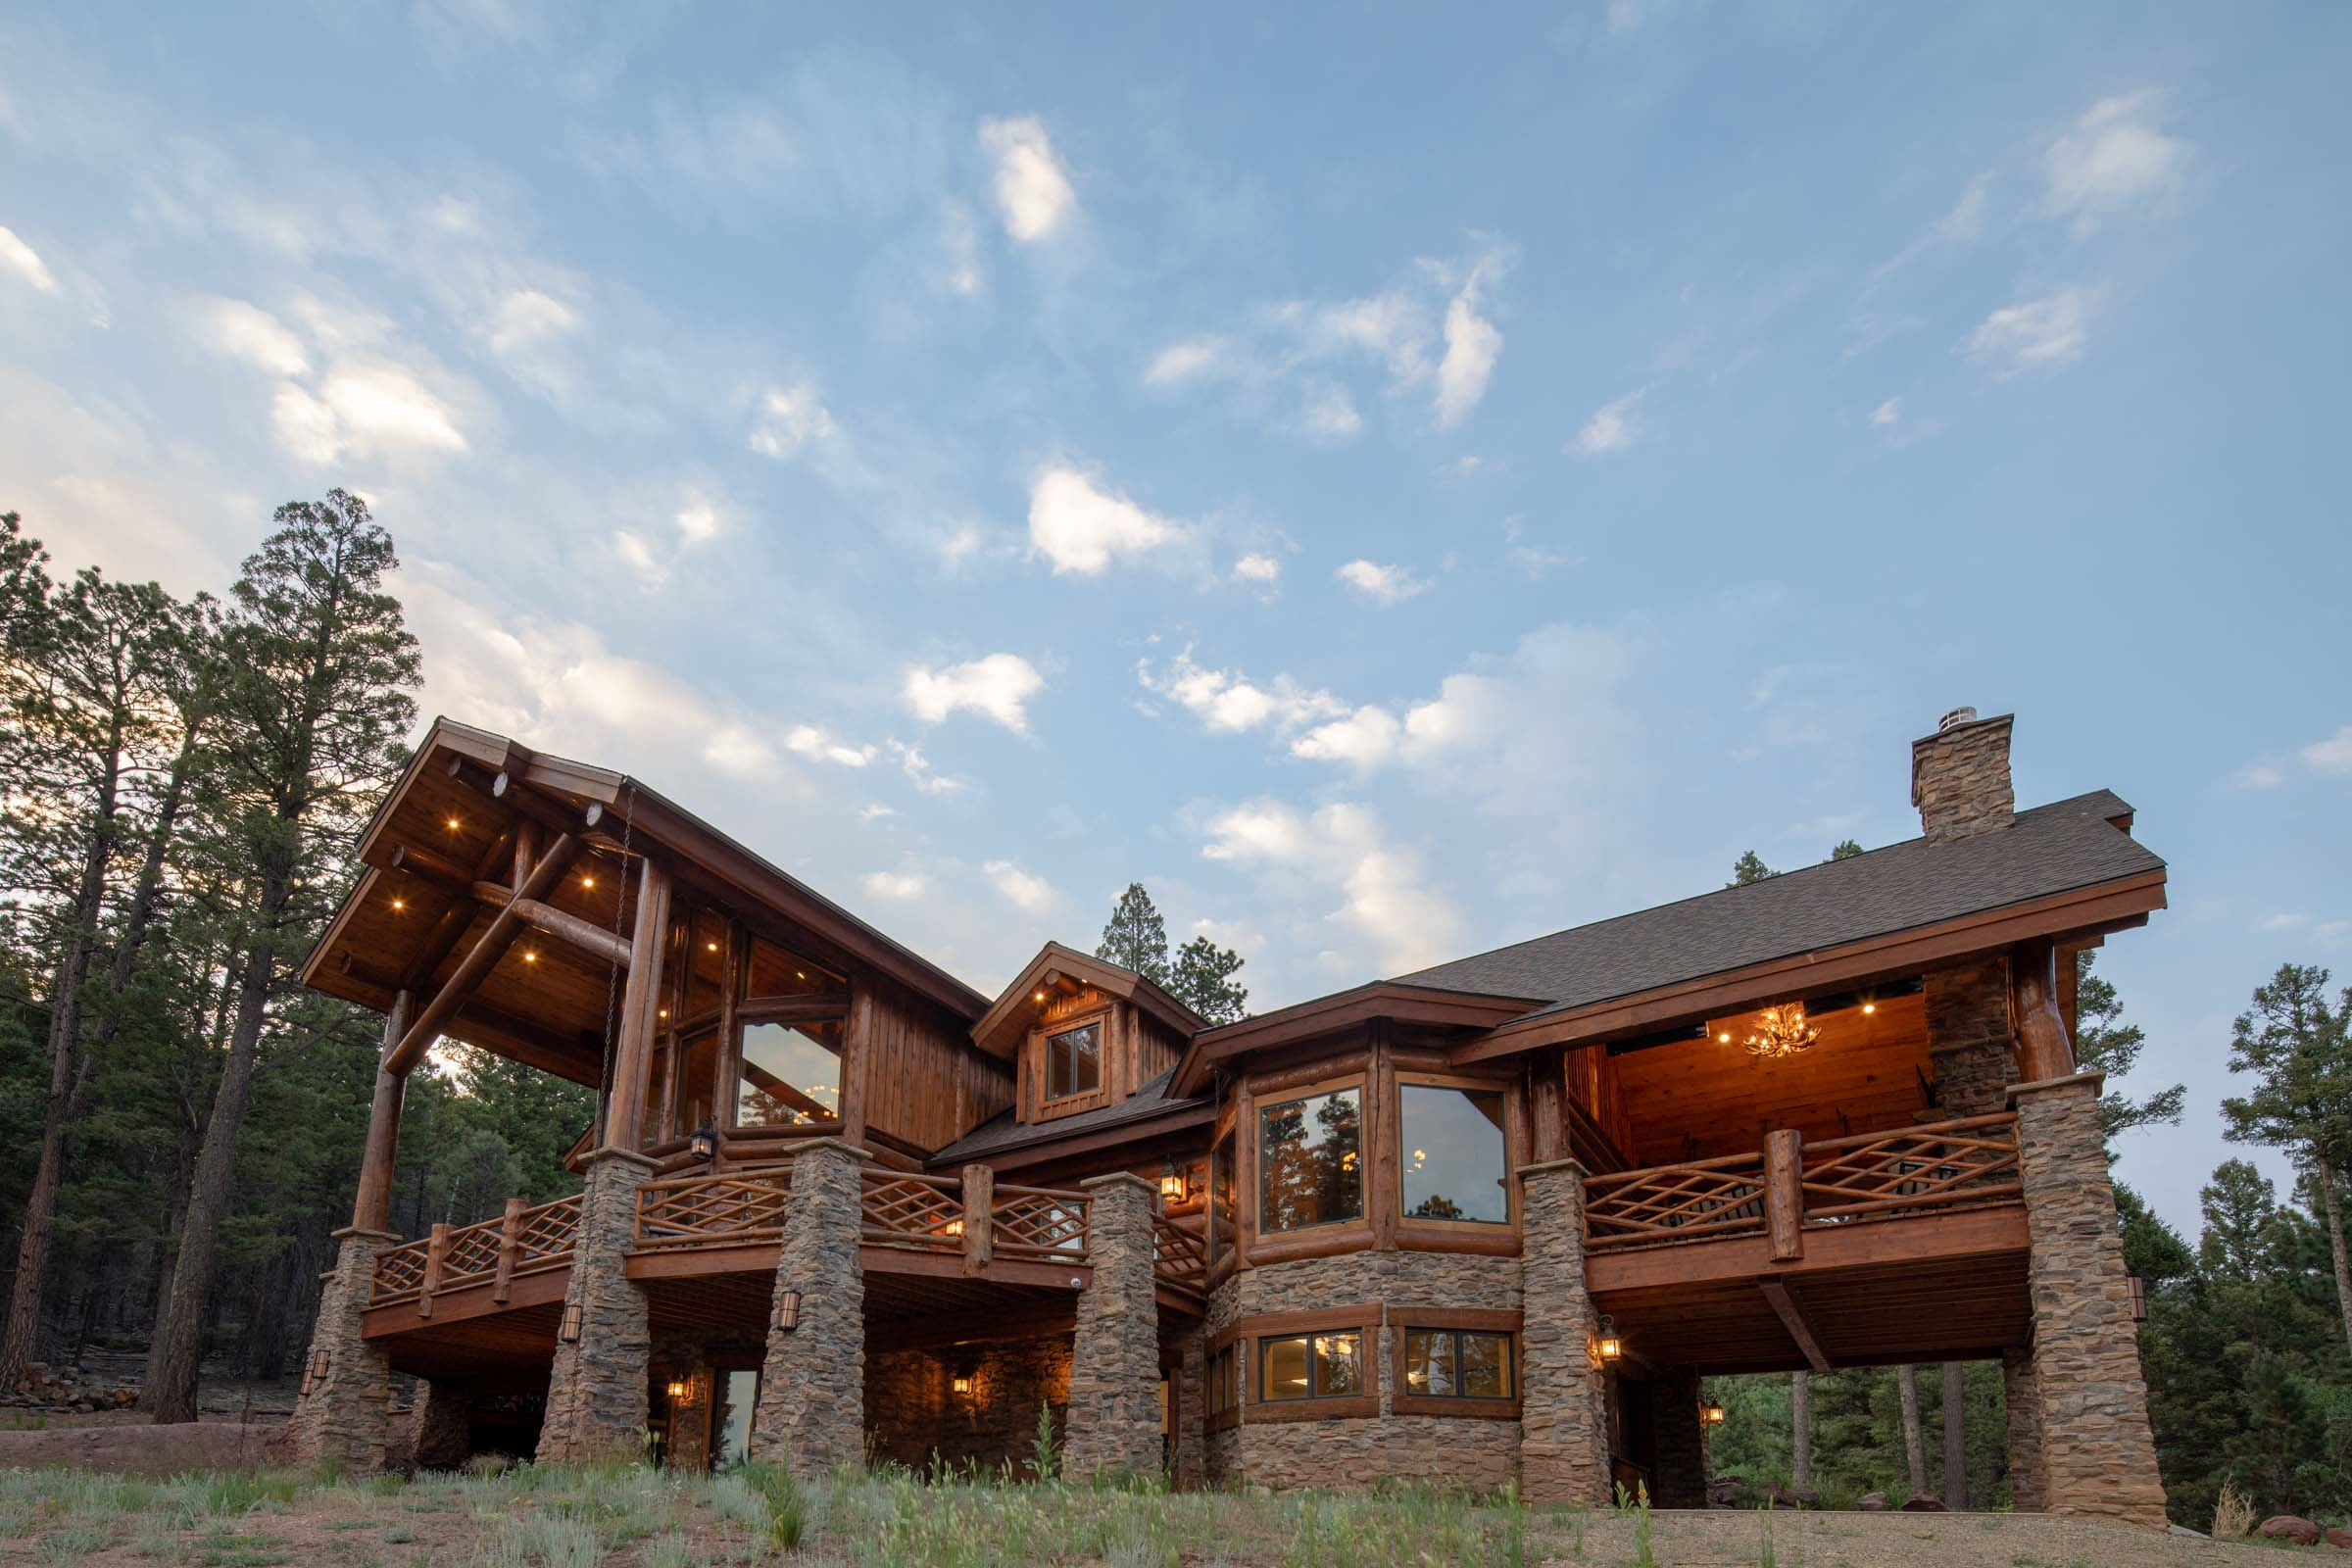 Luxury log cabin angel fire new mexico-6